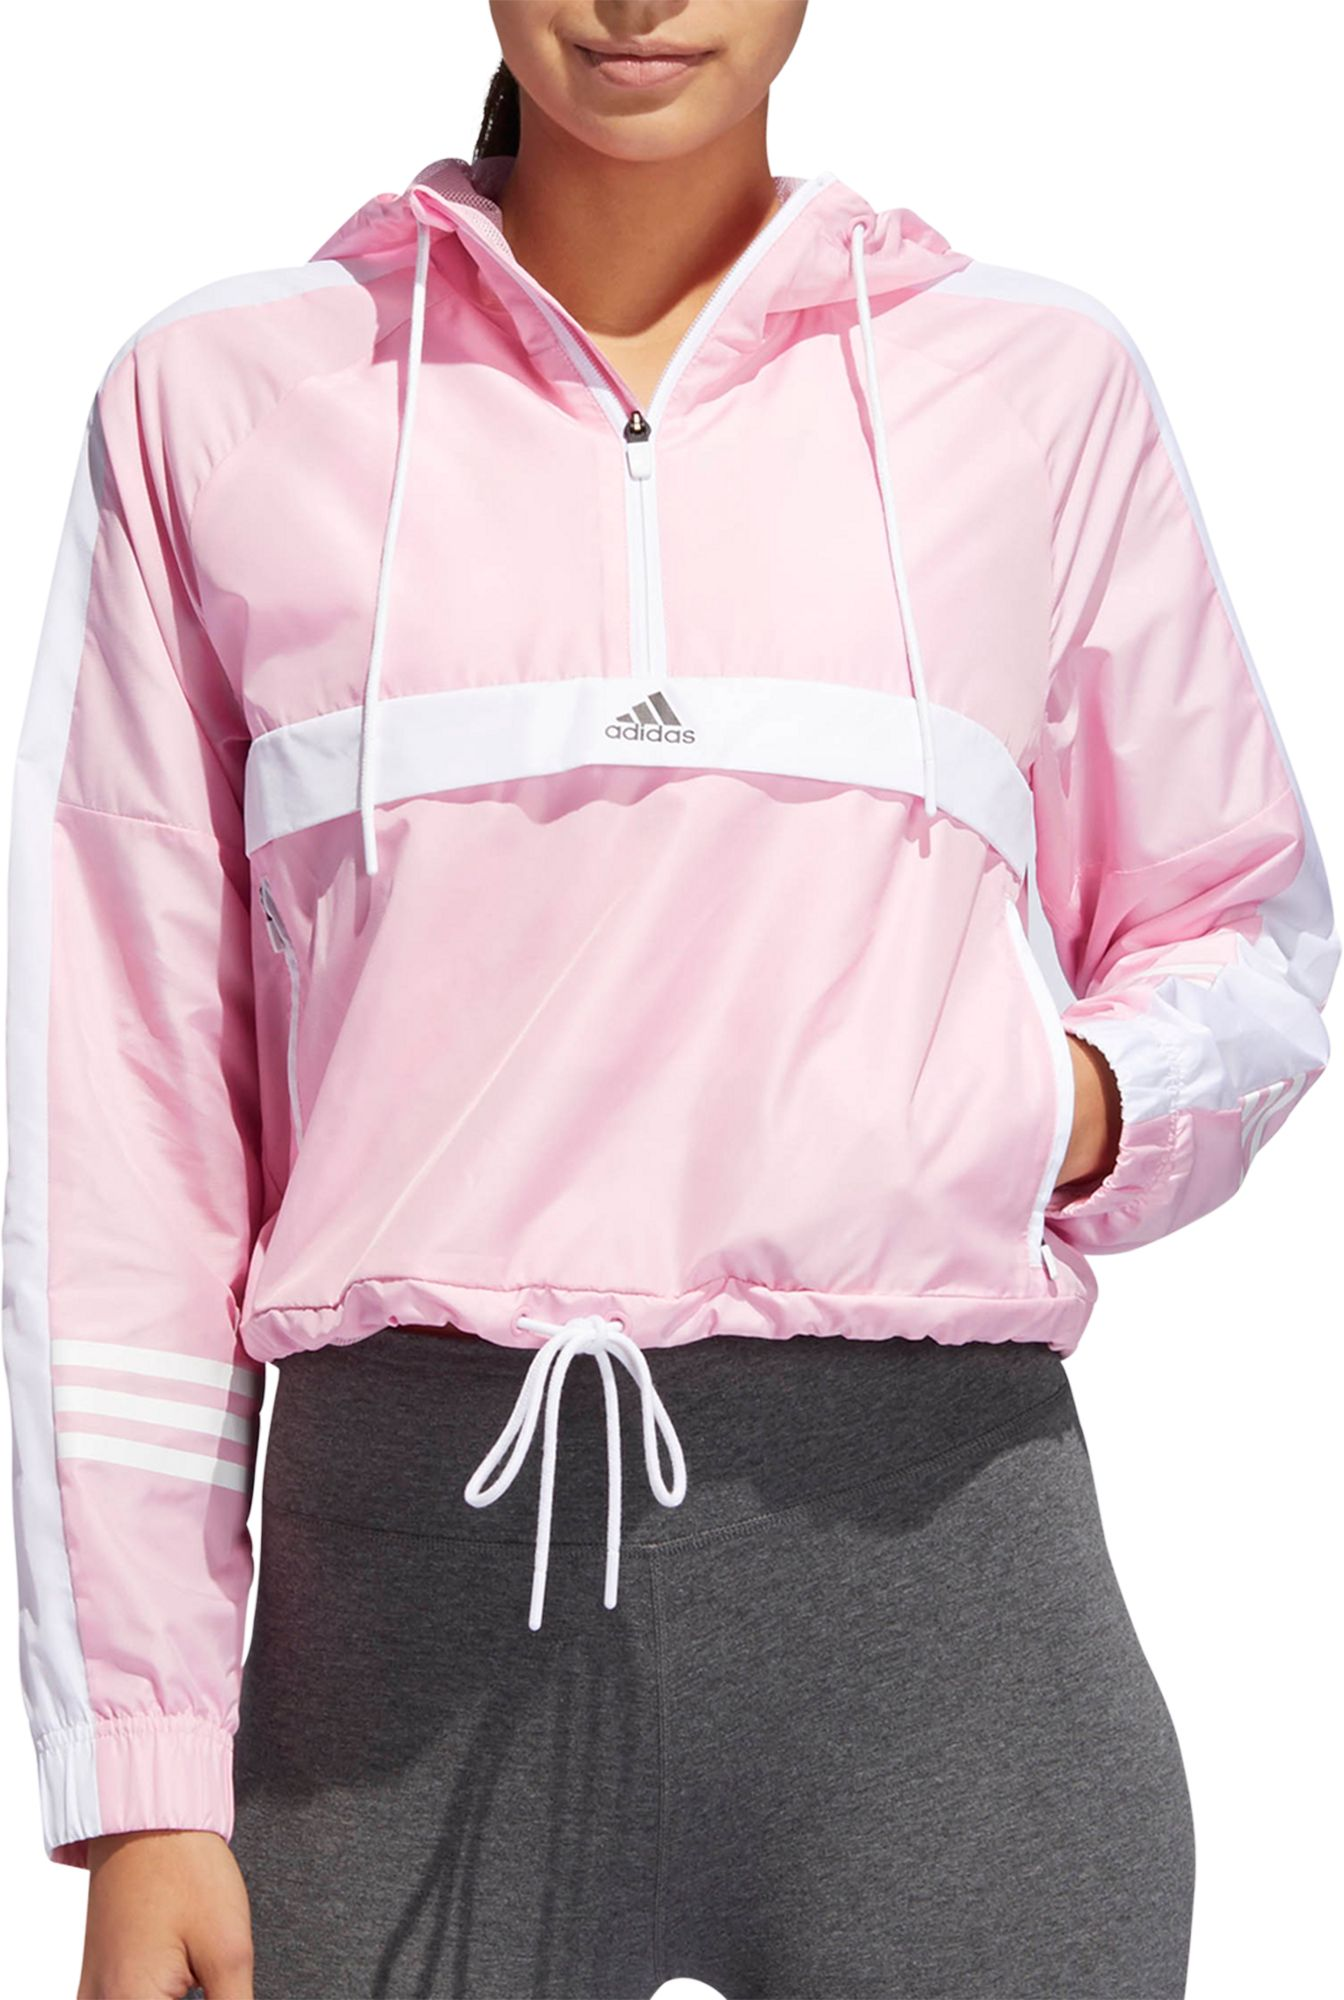 adidas Women's ID Wind Half Zip Jacket (fr) Dick'S Articles